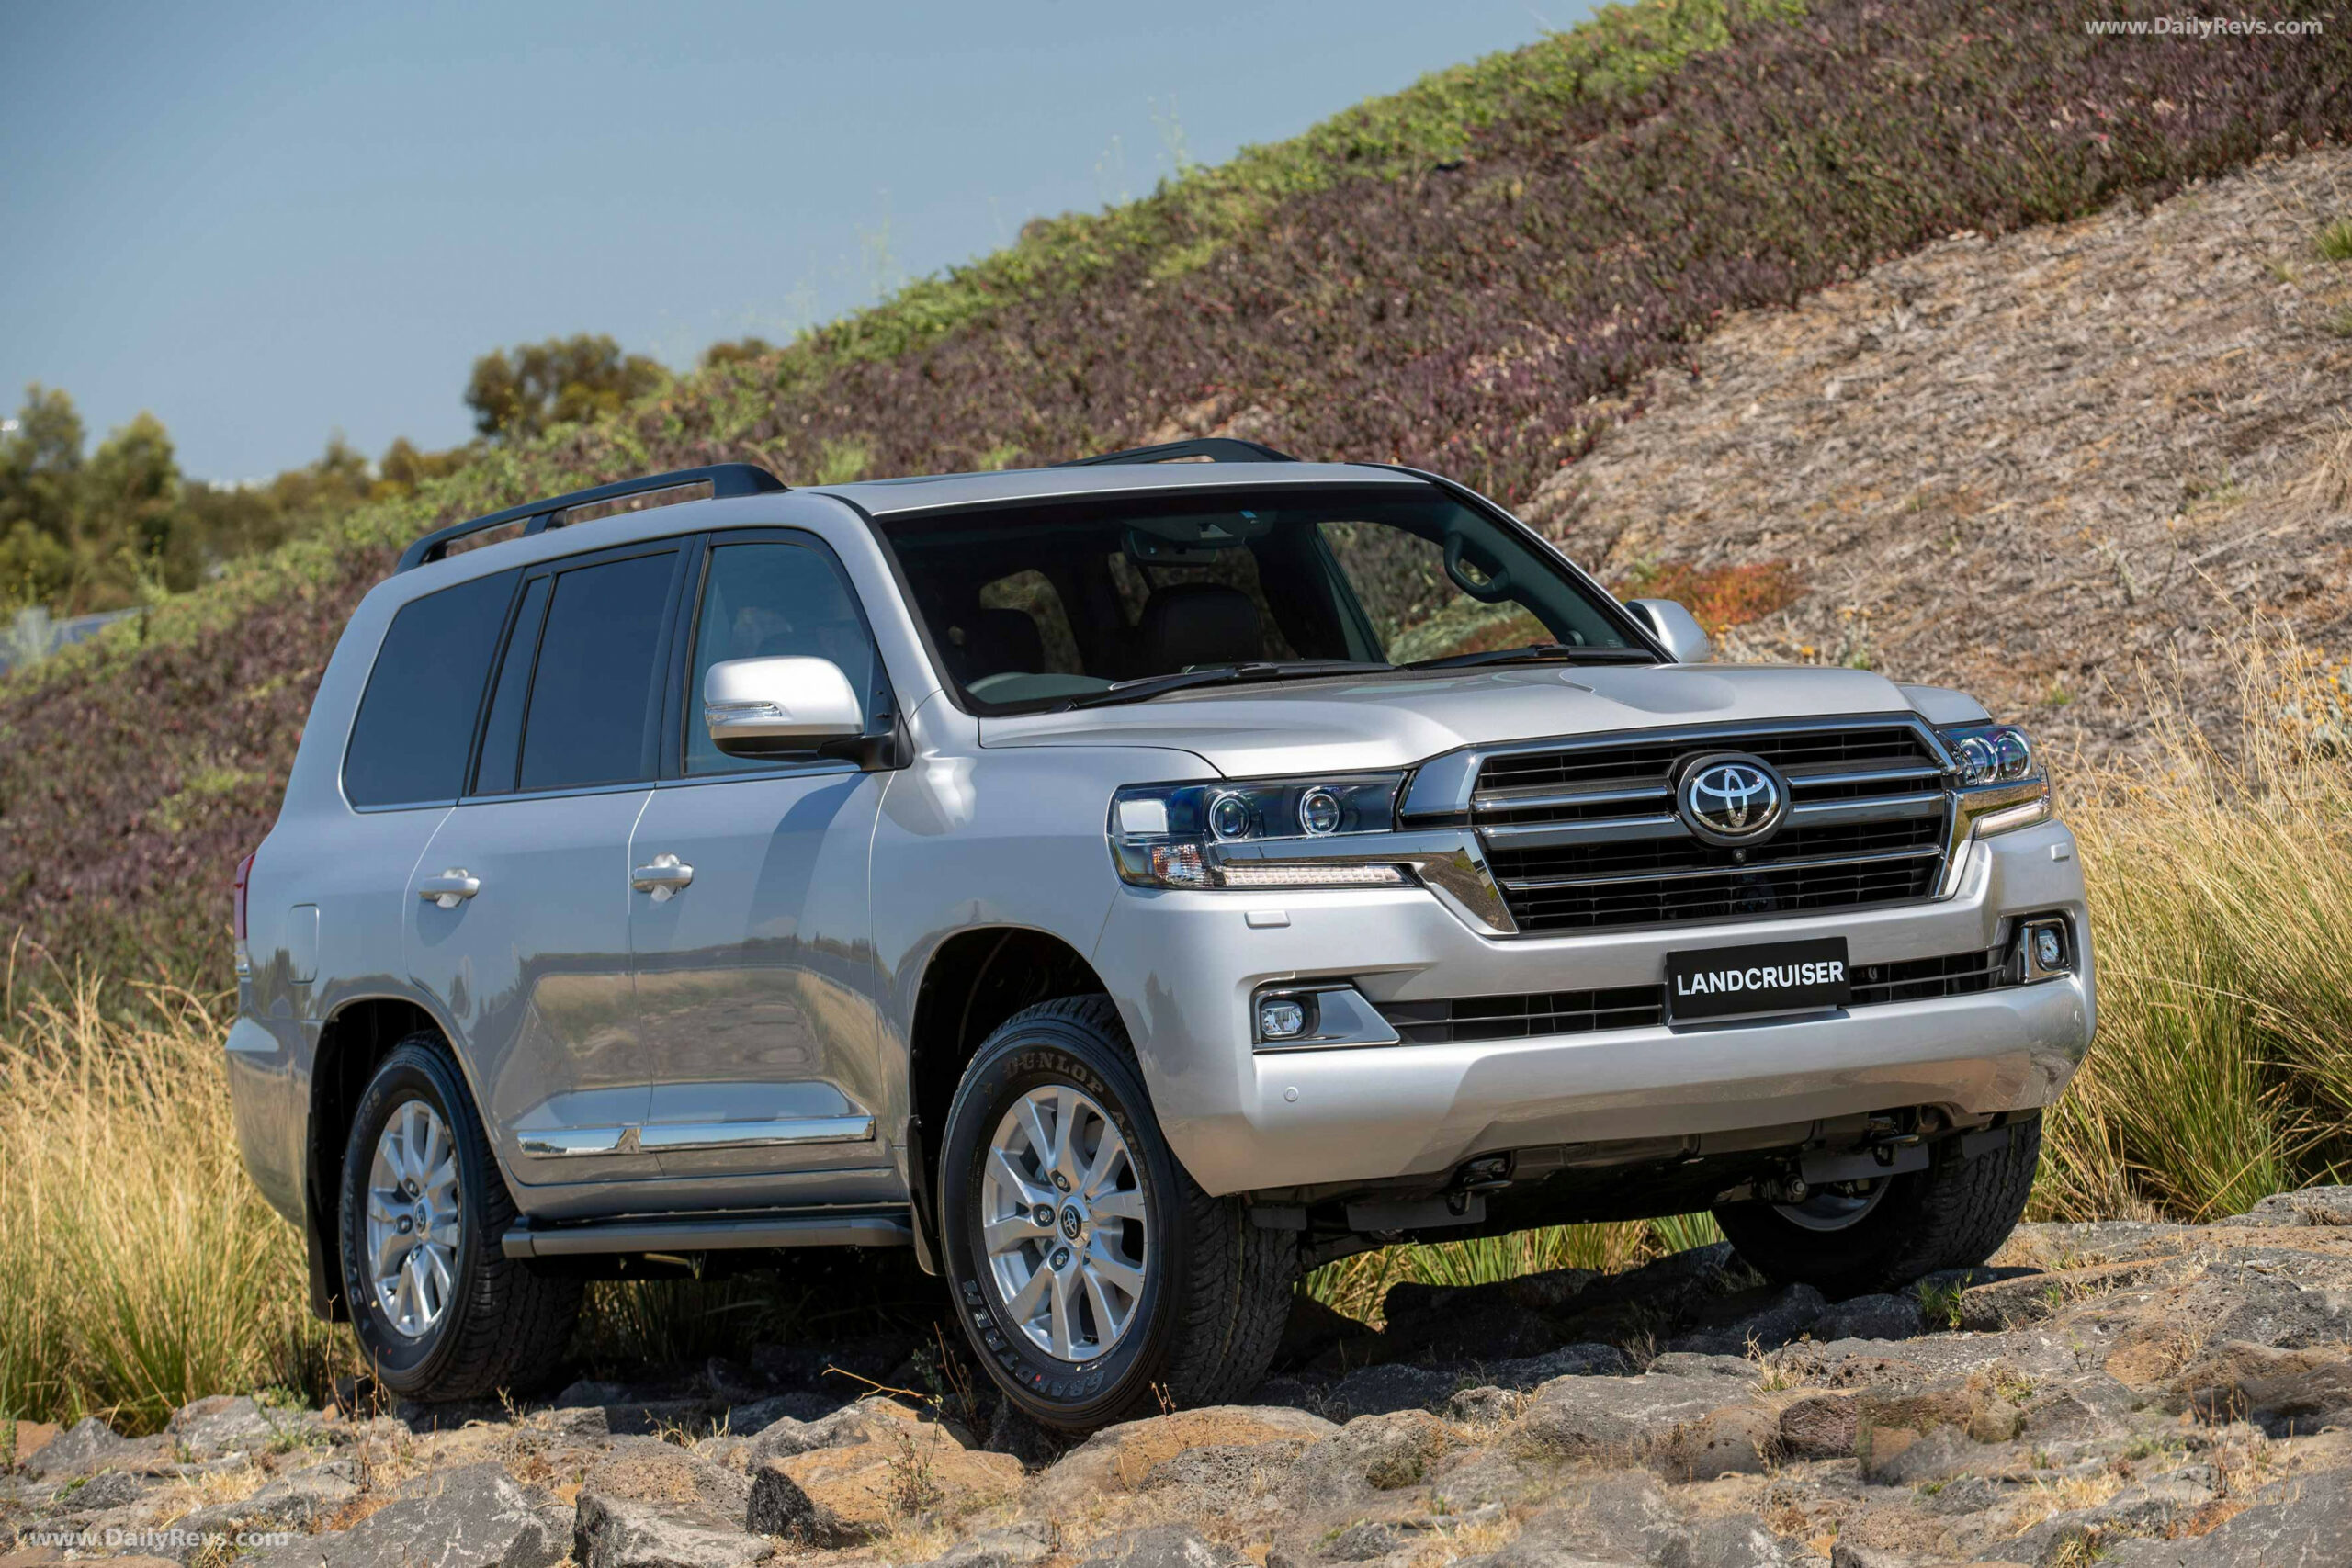 7 Toyota Land Cruiser Sahara Horizon - HD Pictures, Videos ...